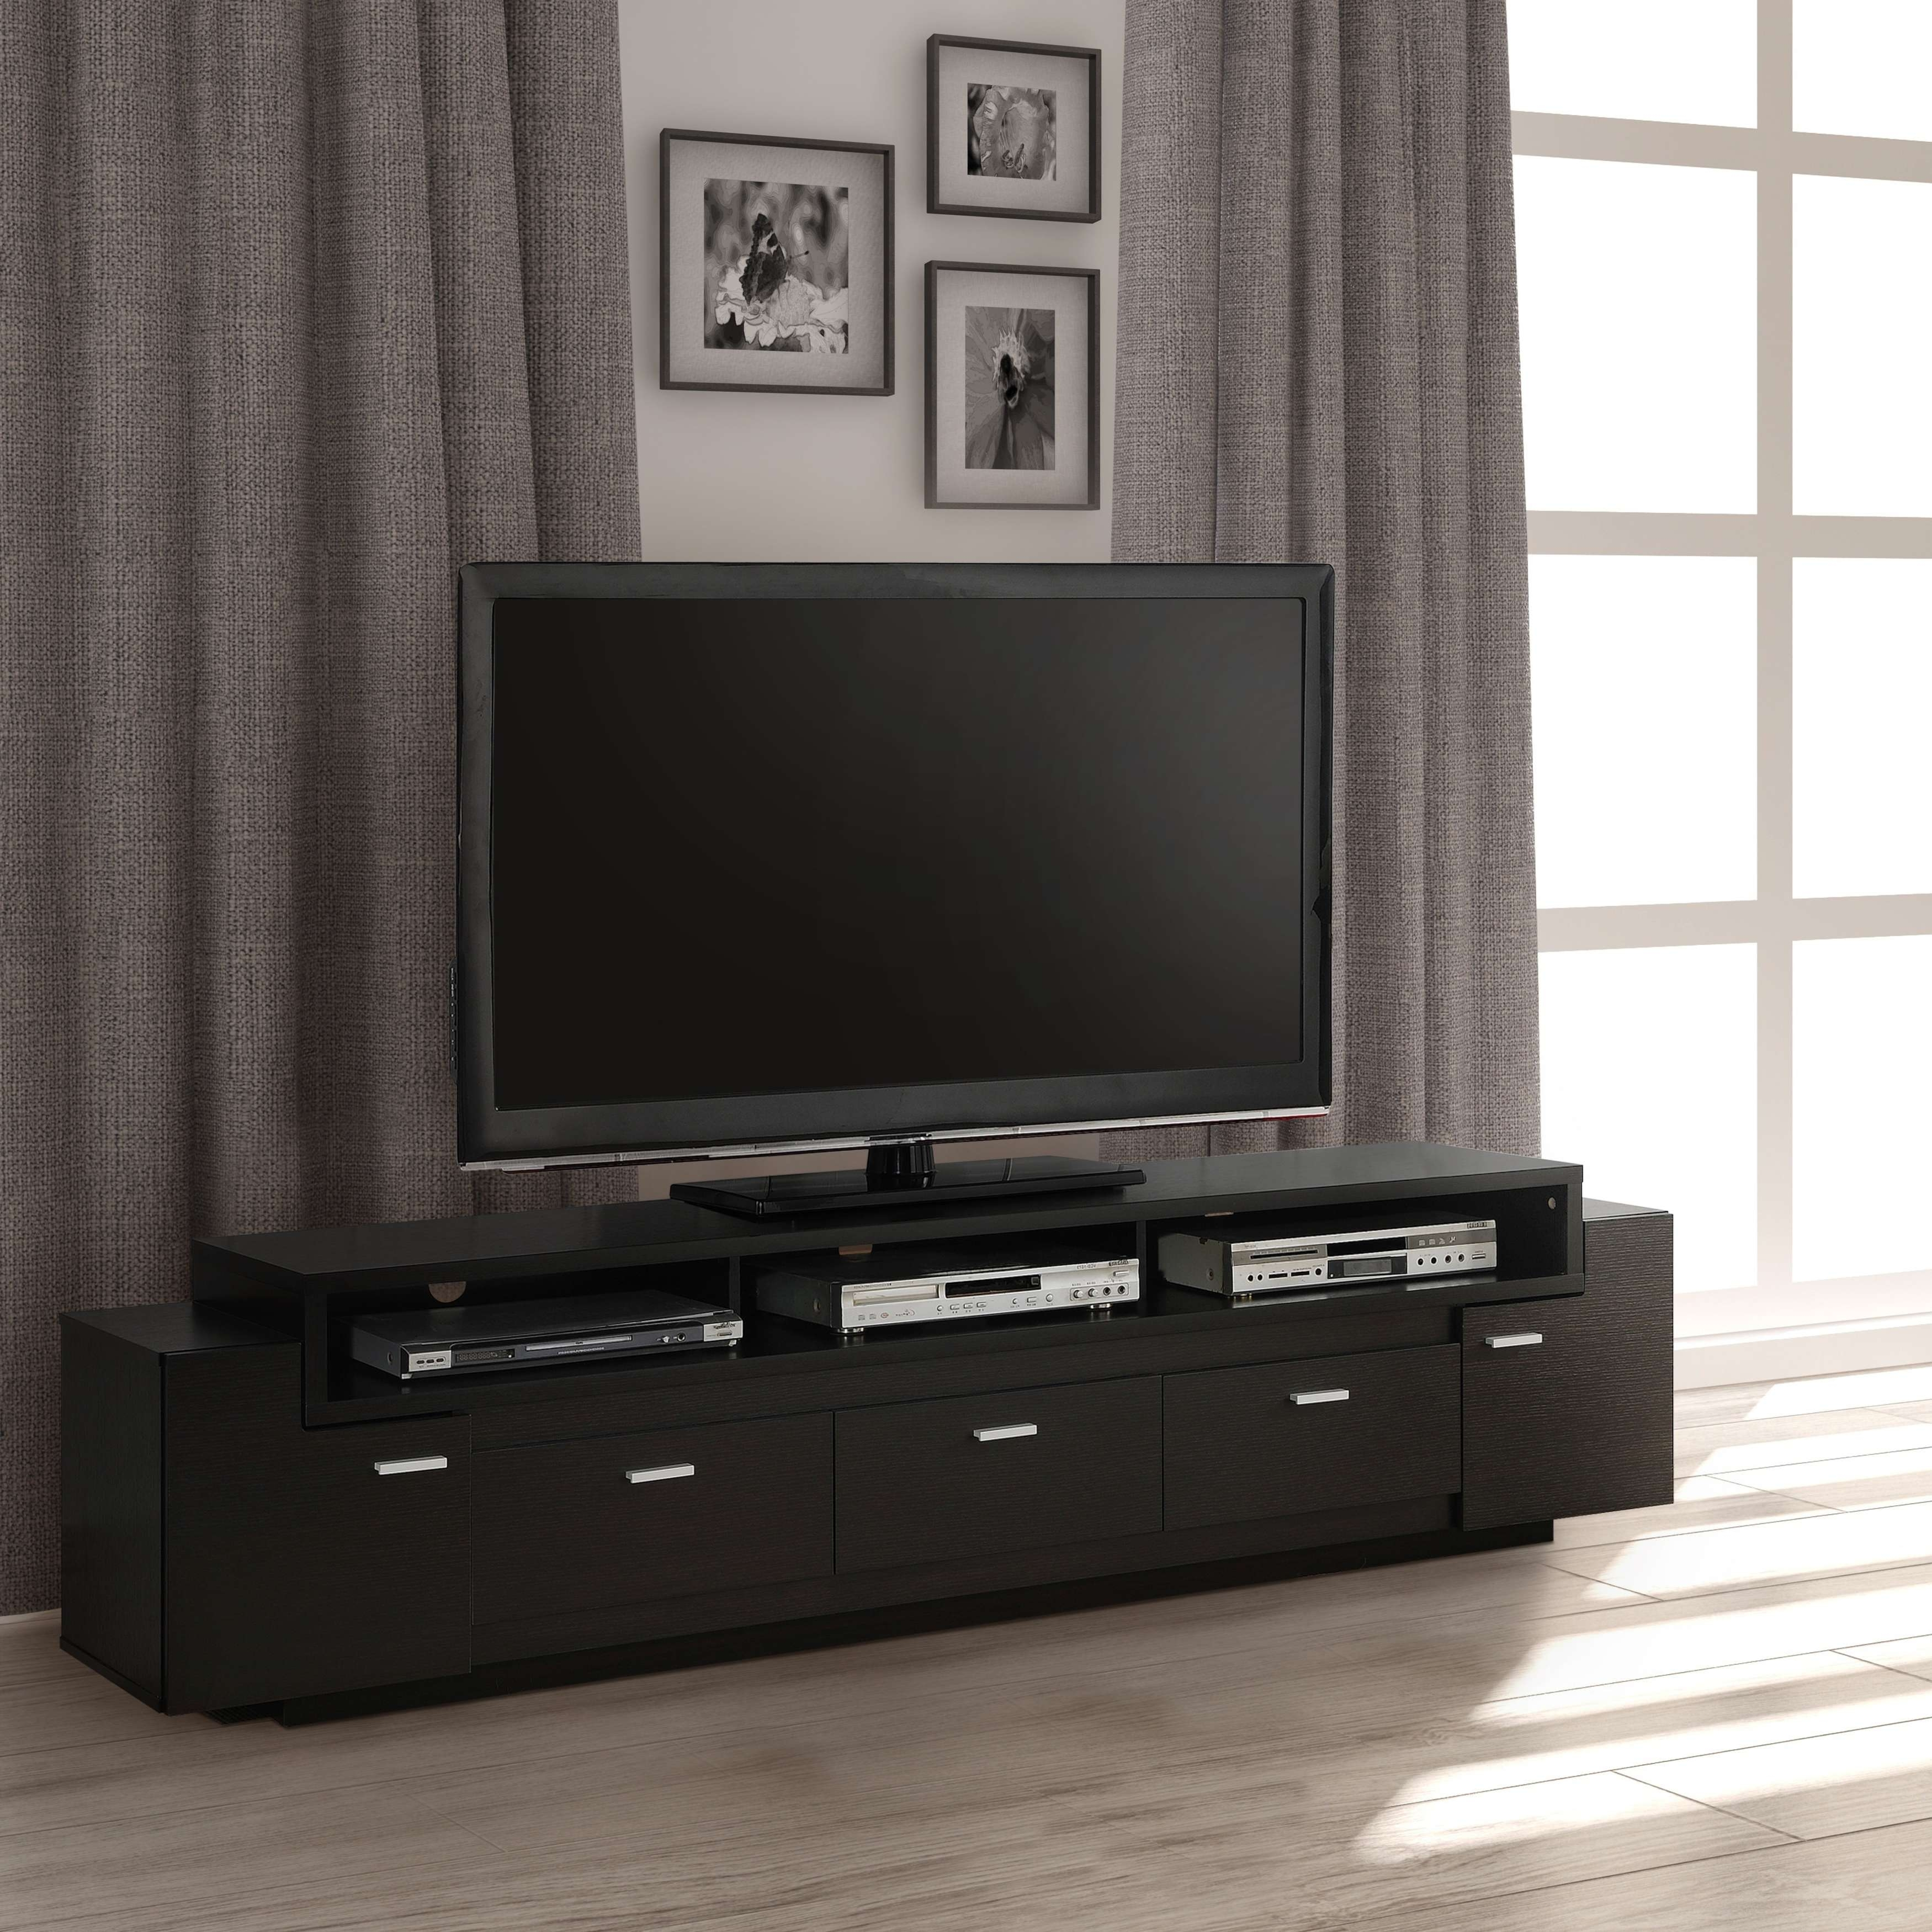 Furniture Of America 84 Inch Peyton Modern Tiered Tv Stand – Free Inside 84 Inch Tv Stands (View 4 of 15)